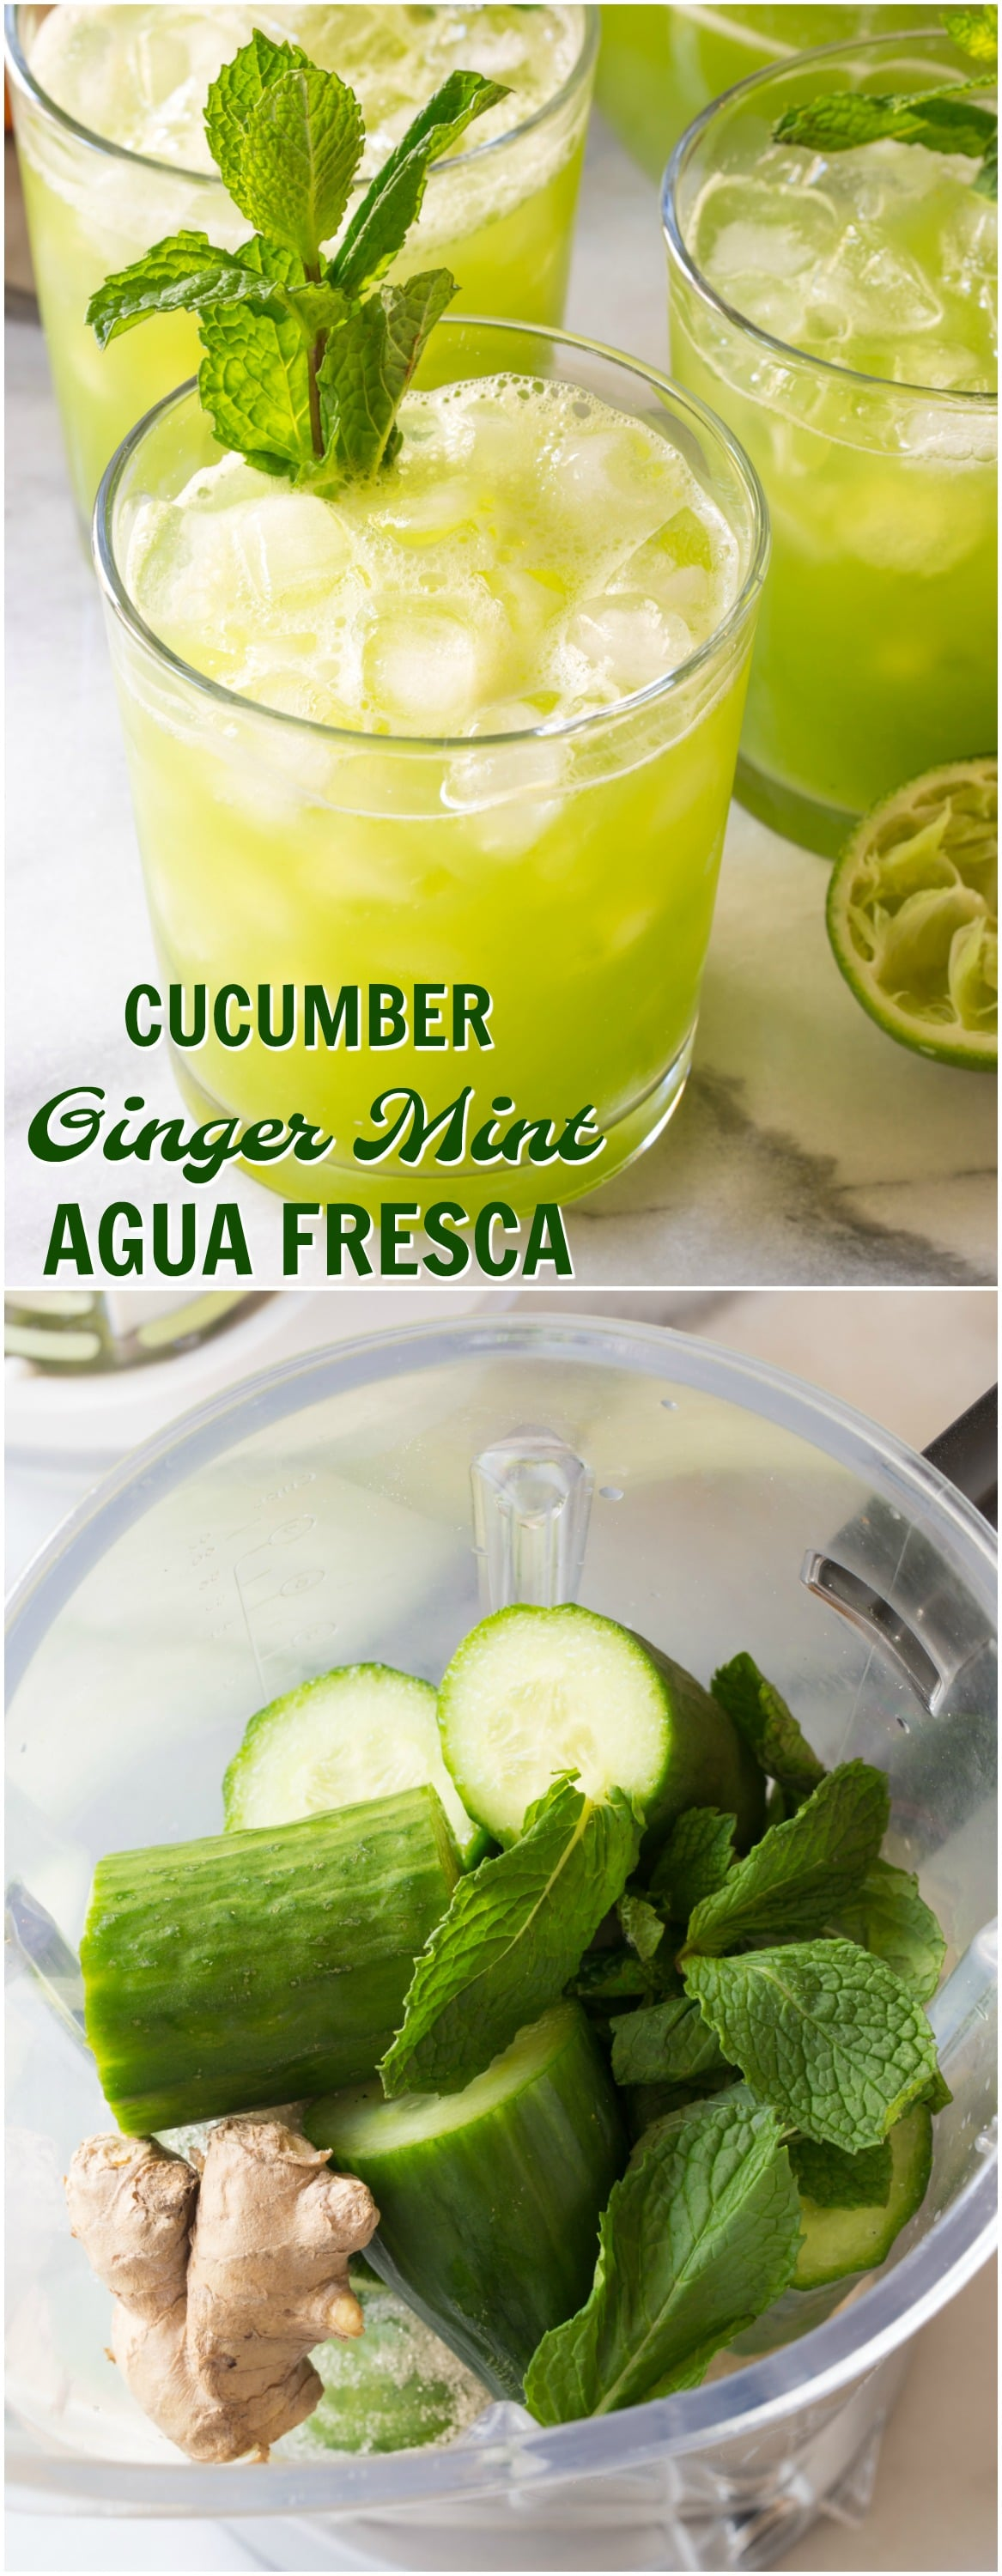 "Cucumber Ginger Mint Agua Fresca Recipe - A refreshing ""mocktail"" nonalcoholic beverage recipe with lime juice, cucumbers, mint leaves, and fresh ginger. Add vodka or tequila to kick things up for perky summer cocktail!"